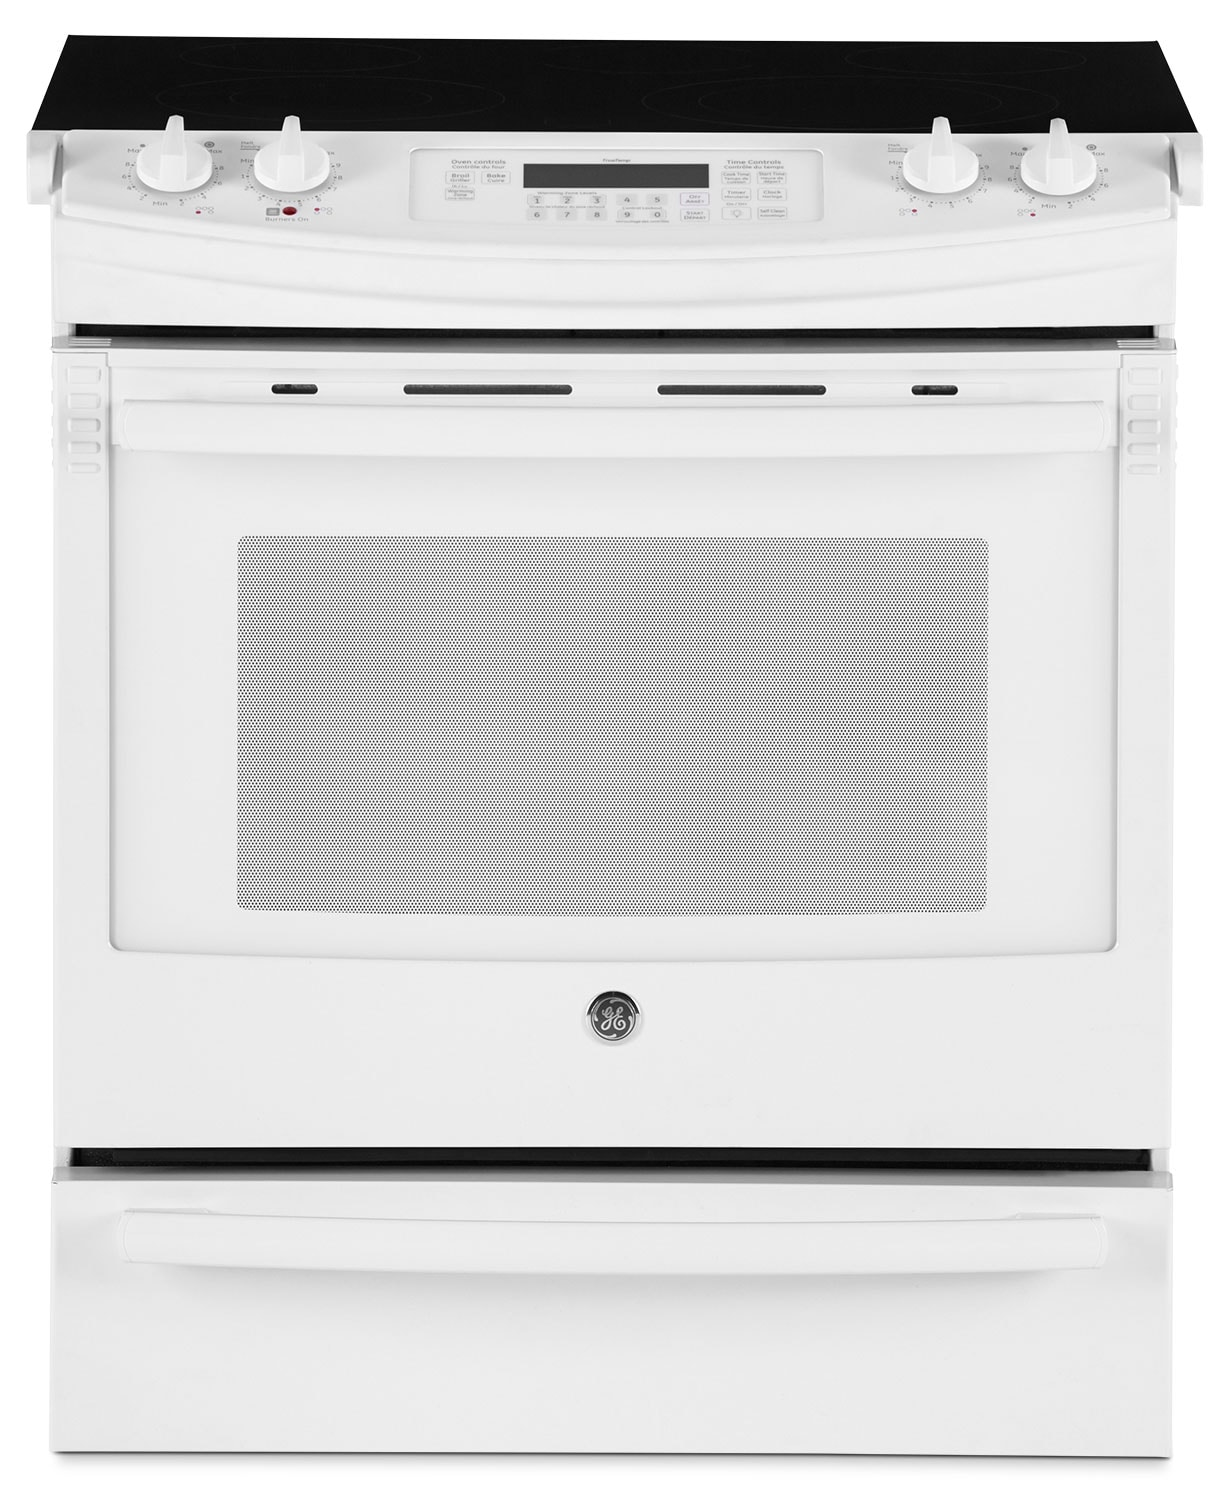 GE White Slide-In Electric Range (5.2 Cu. Ft.) - JCS630DFWW